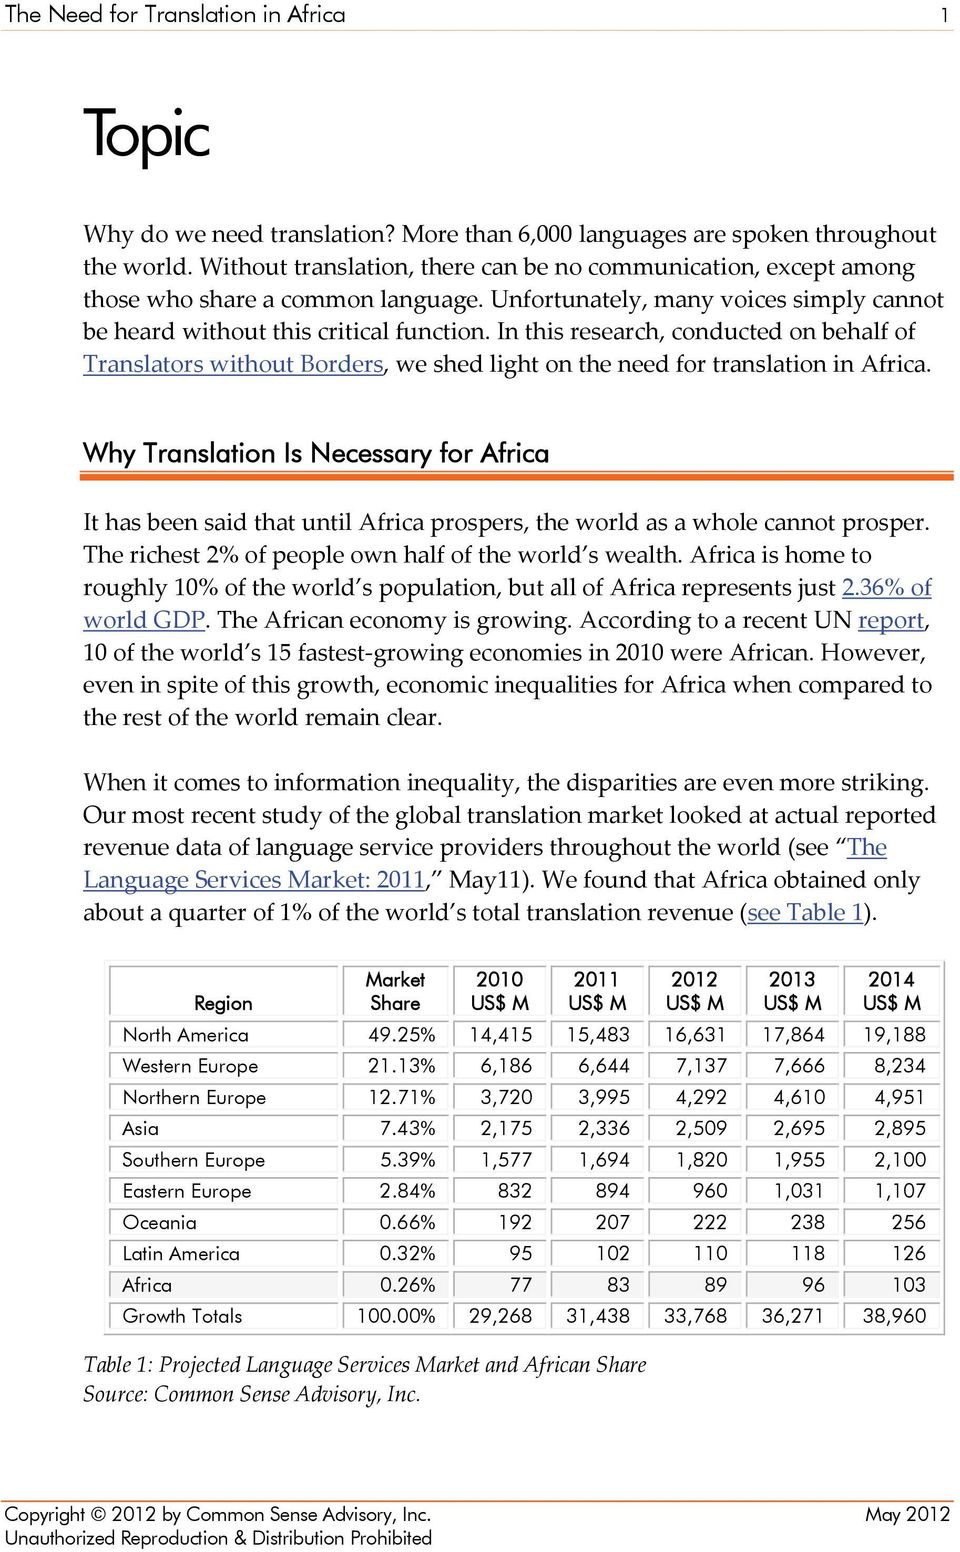 In this research, conducted on behalf of Translators without Borders, we shed light on the need for translation in Africa.